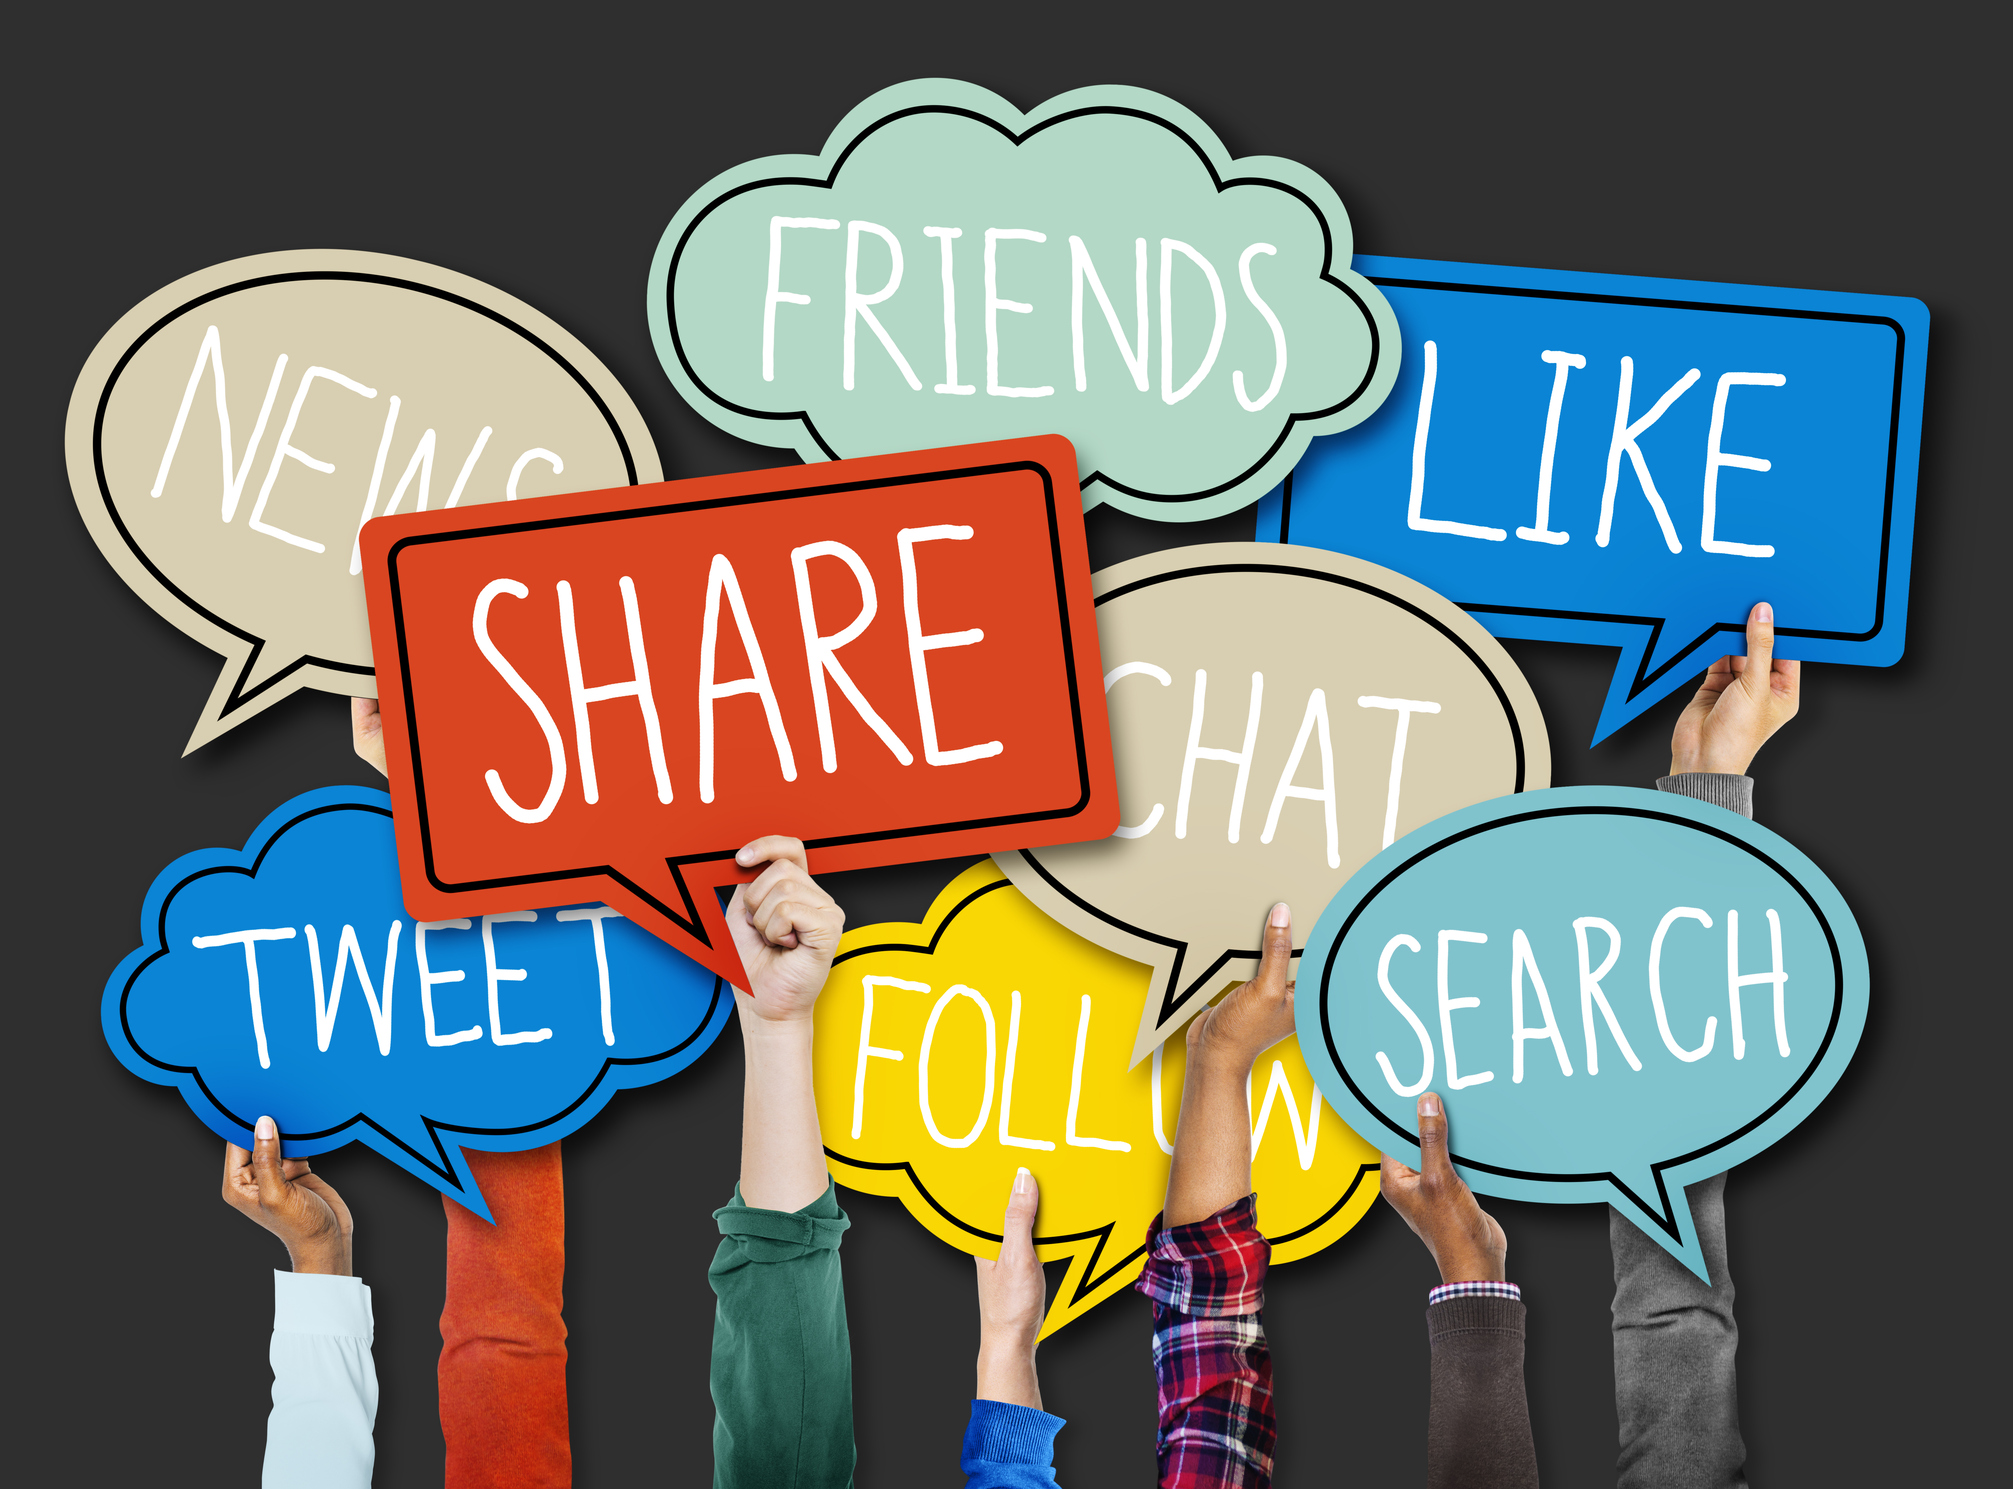 Are consumers really following brands on social media?